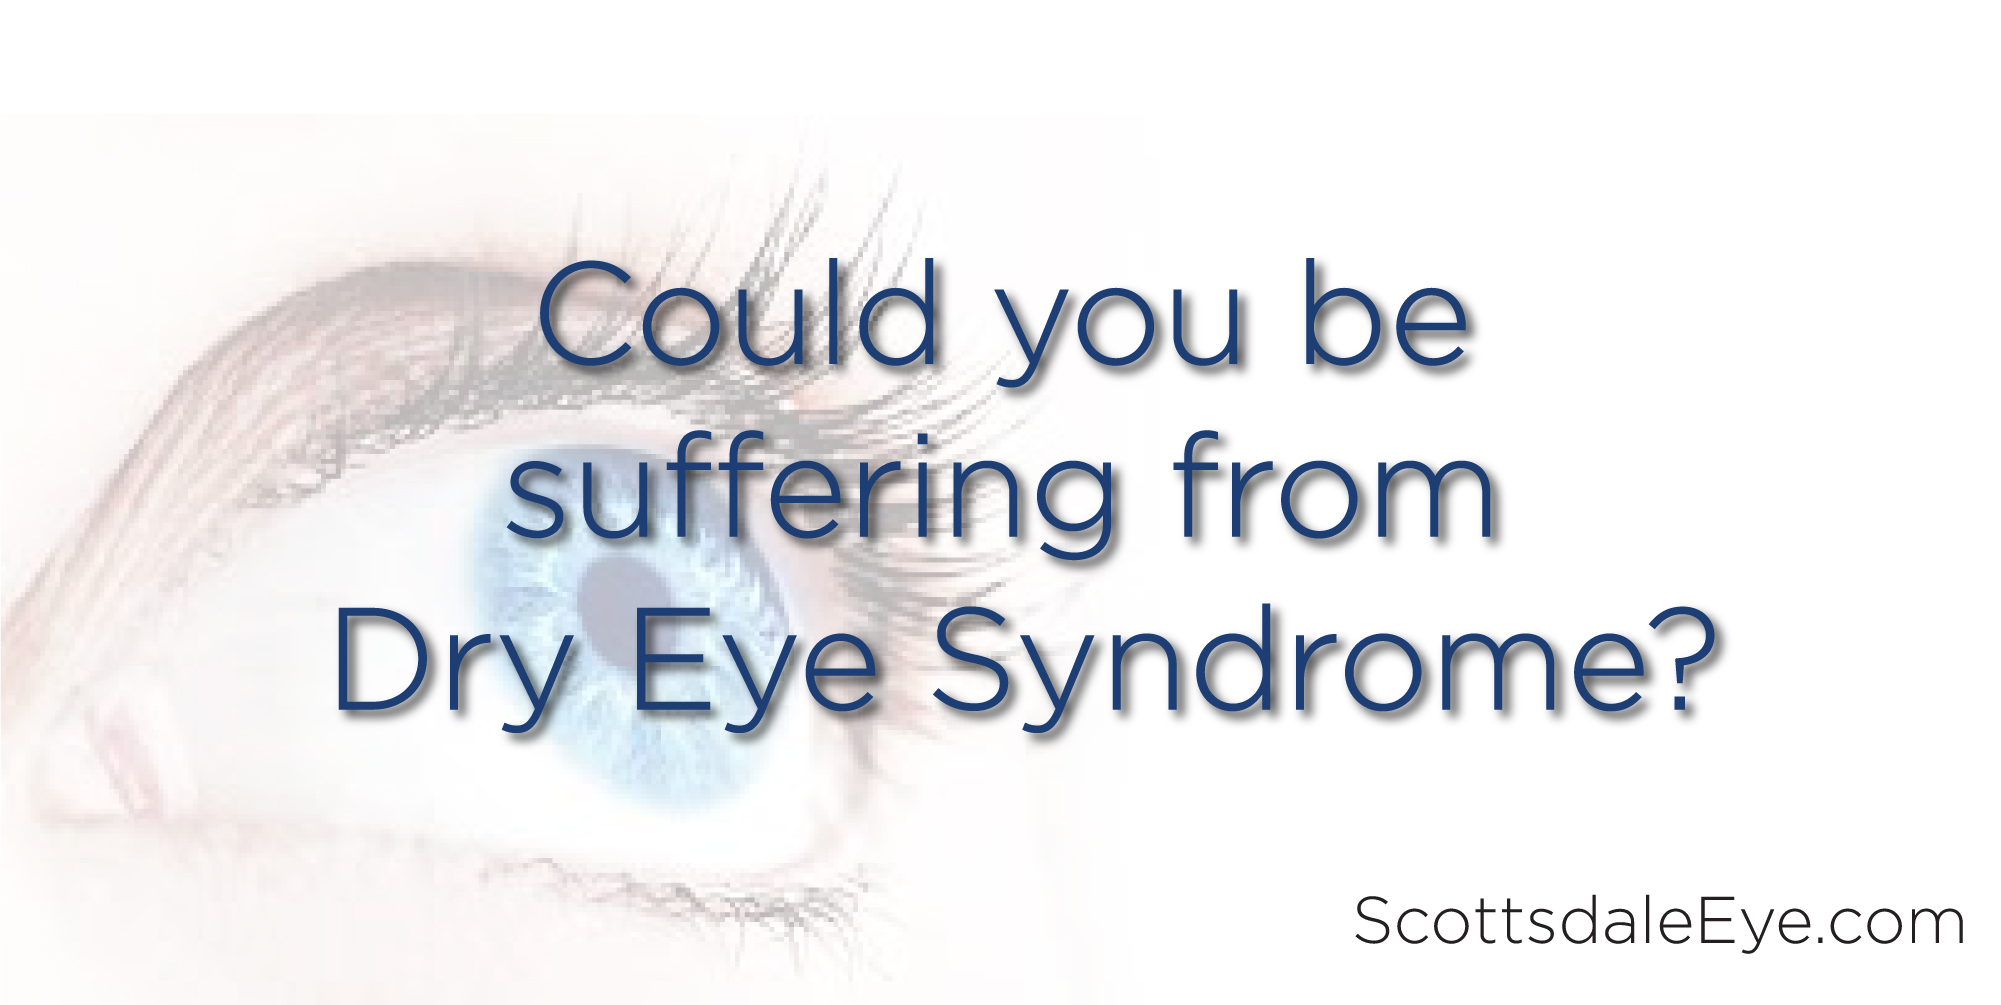 Could you be suffering from Dry Eye Syndrome?